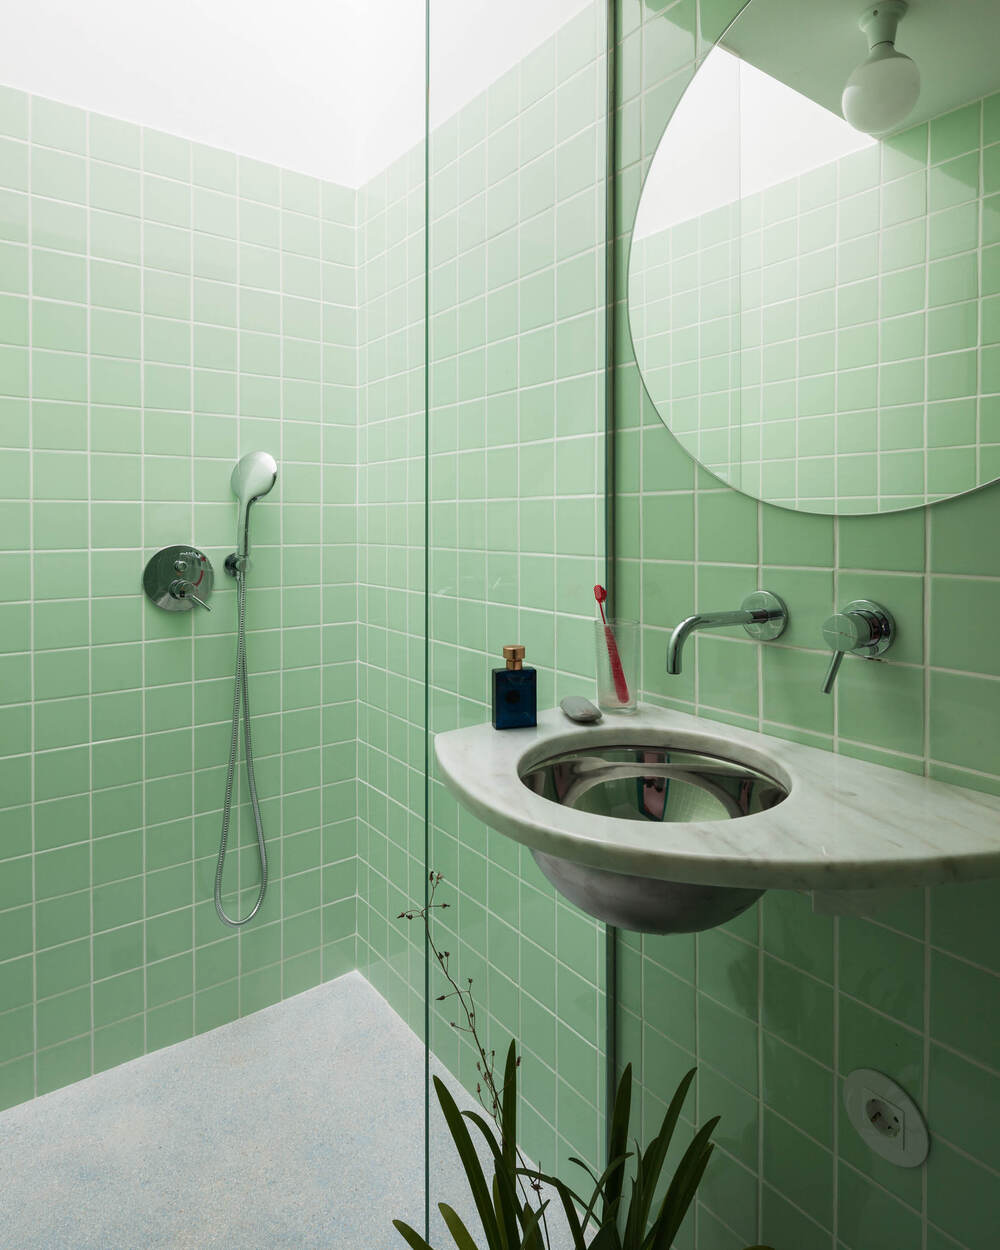 The bathroom has consistent green tiles on its walls that make the fixtures stand out.